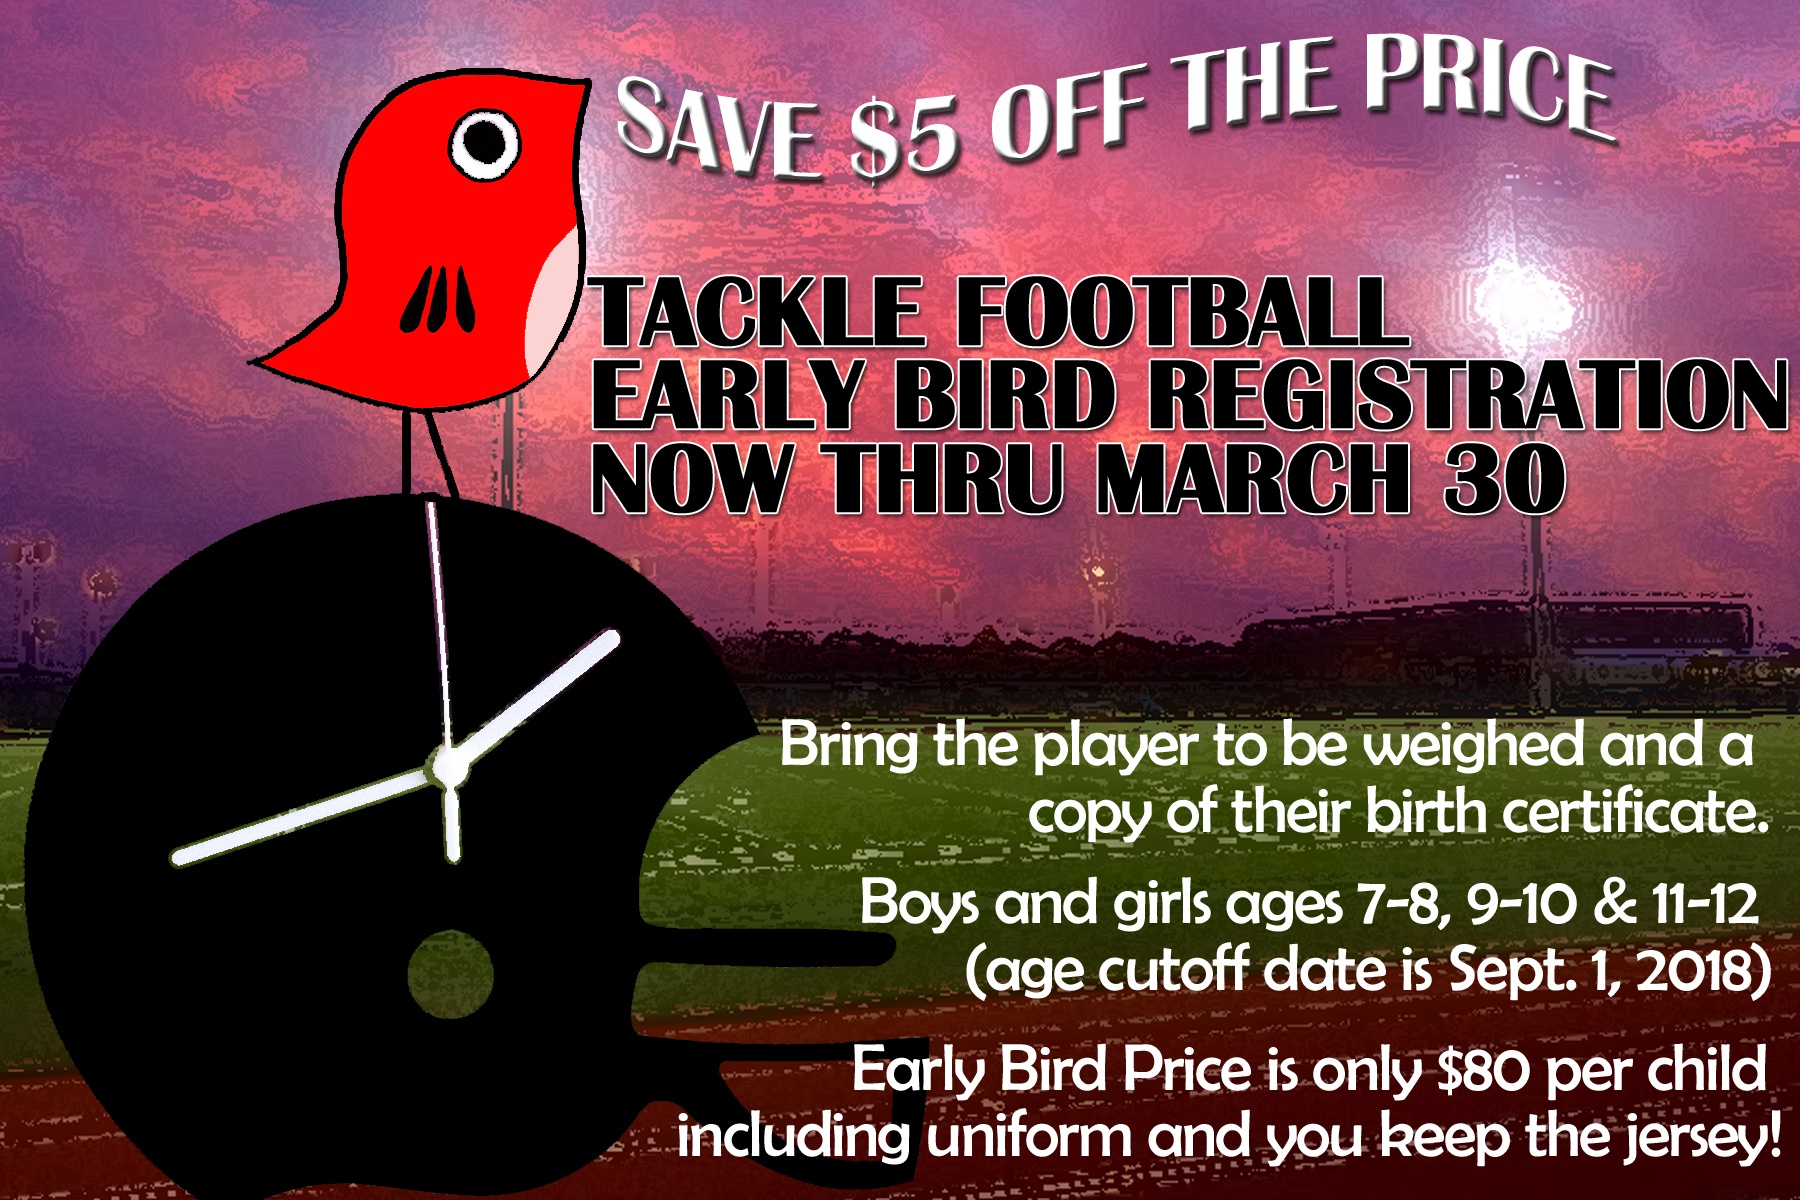 EARLY BIRD TACKLE FOOTBALL REGISTRATION